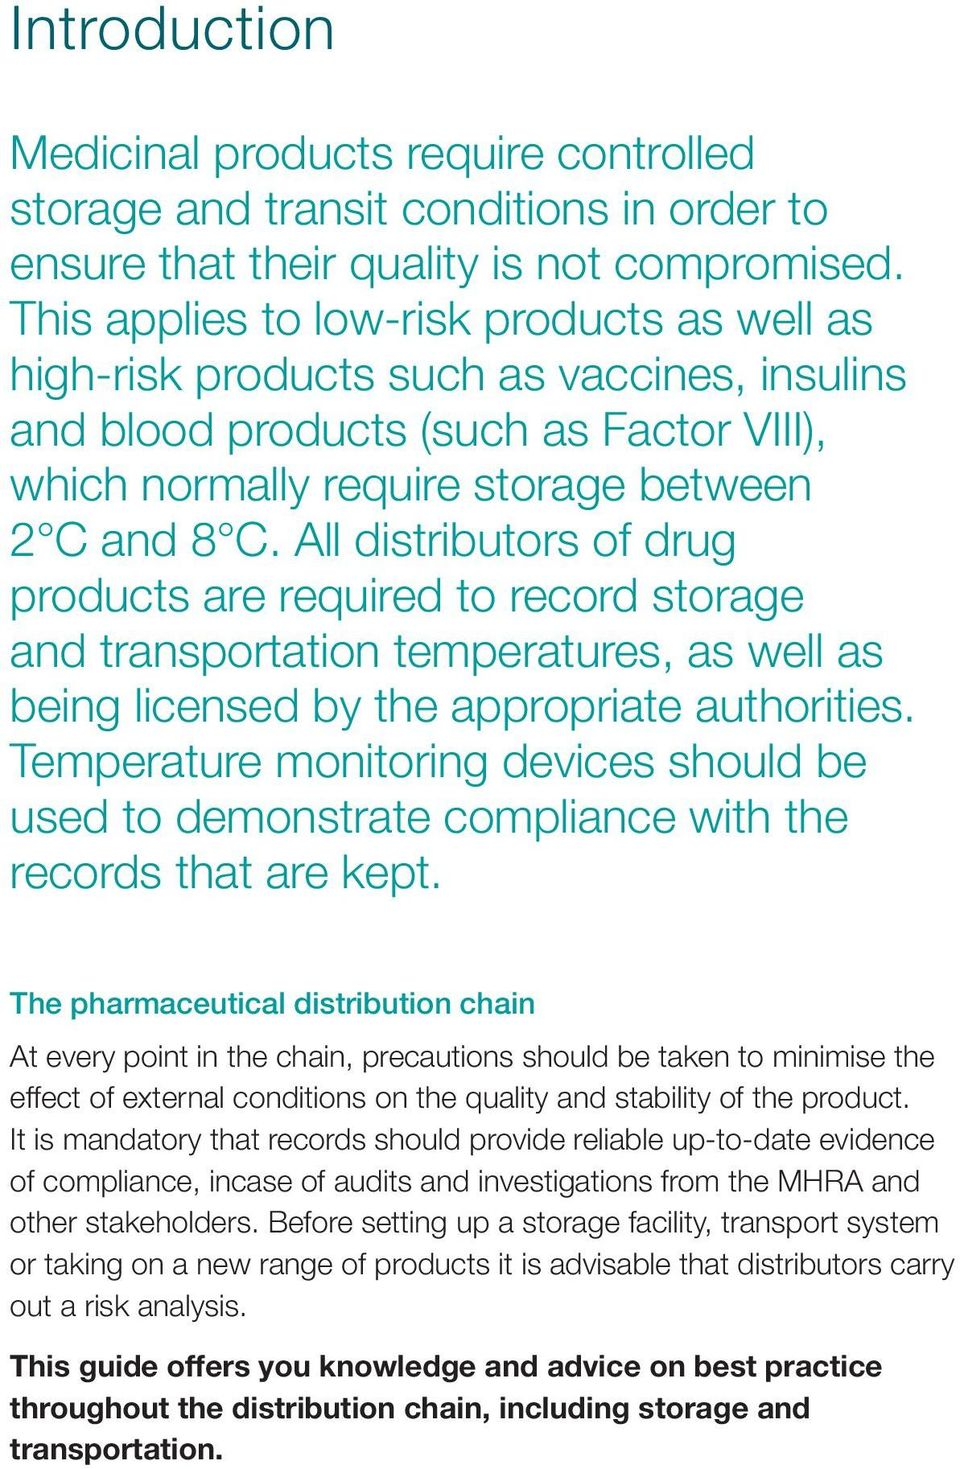 All distributors of drug products are required to record storage and transportation temperatures, as well as being licensed by the appropriate authorities.